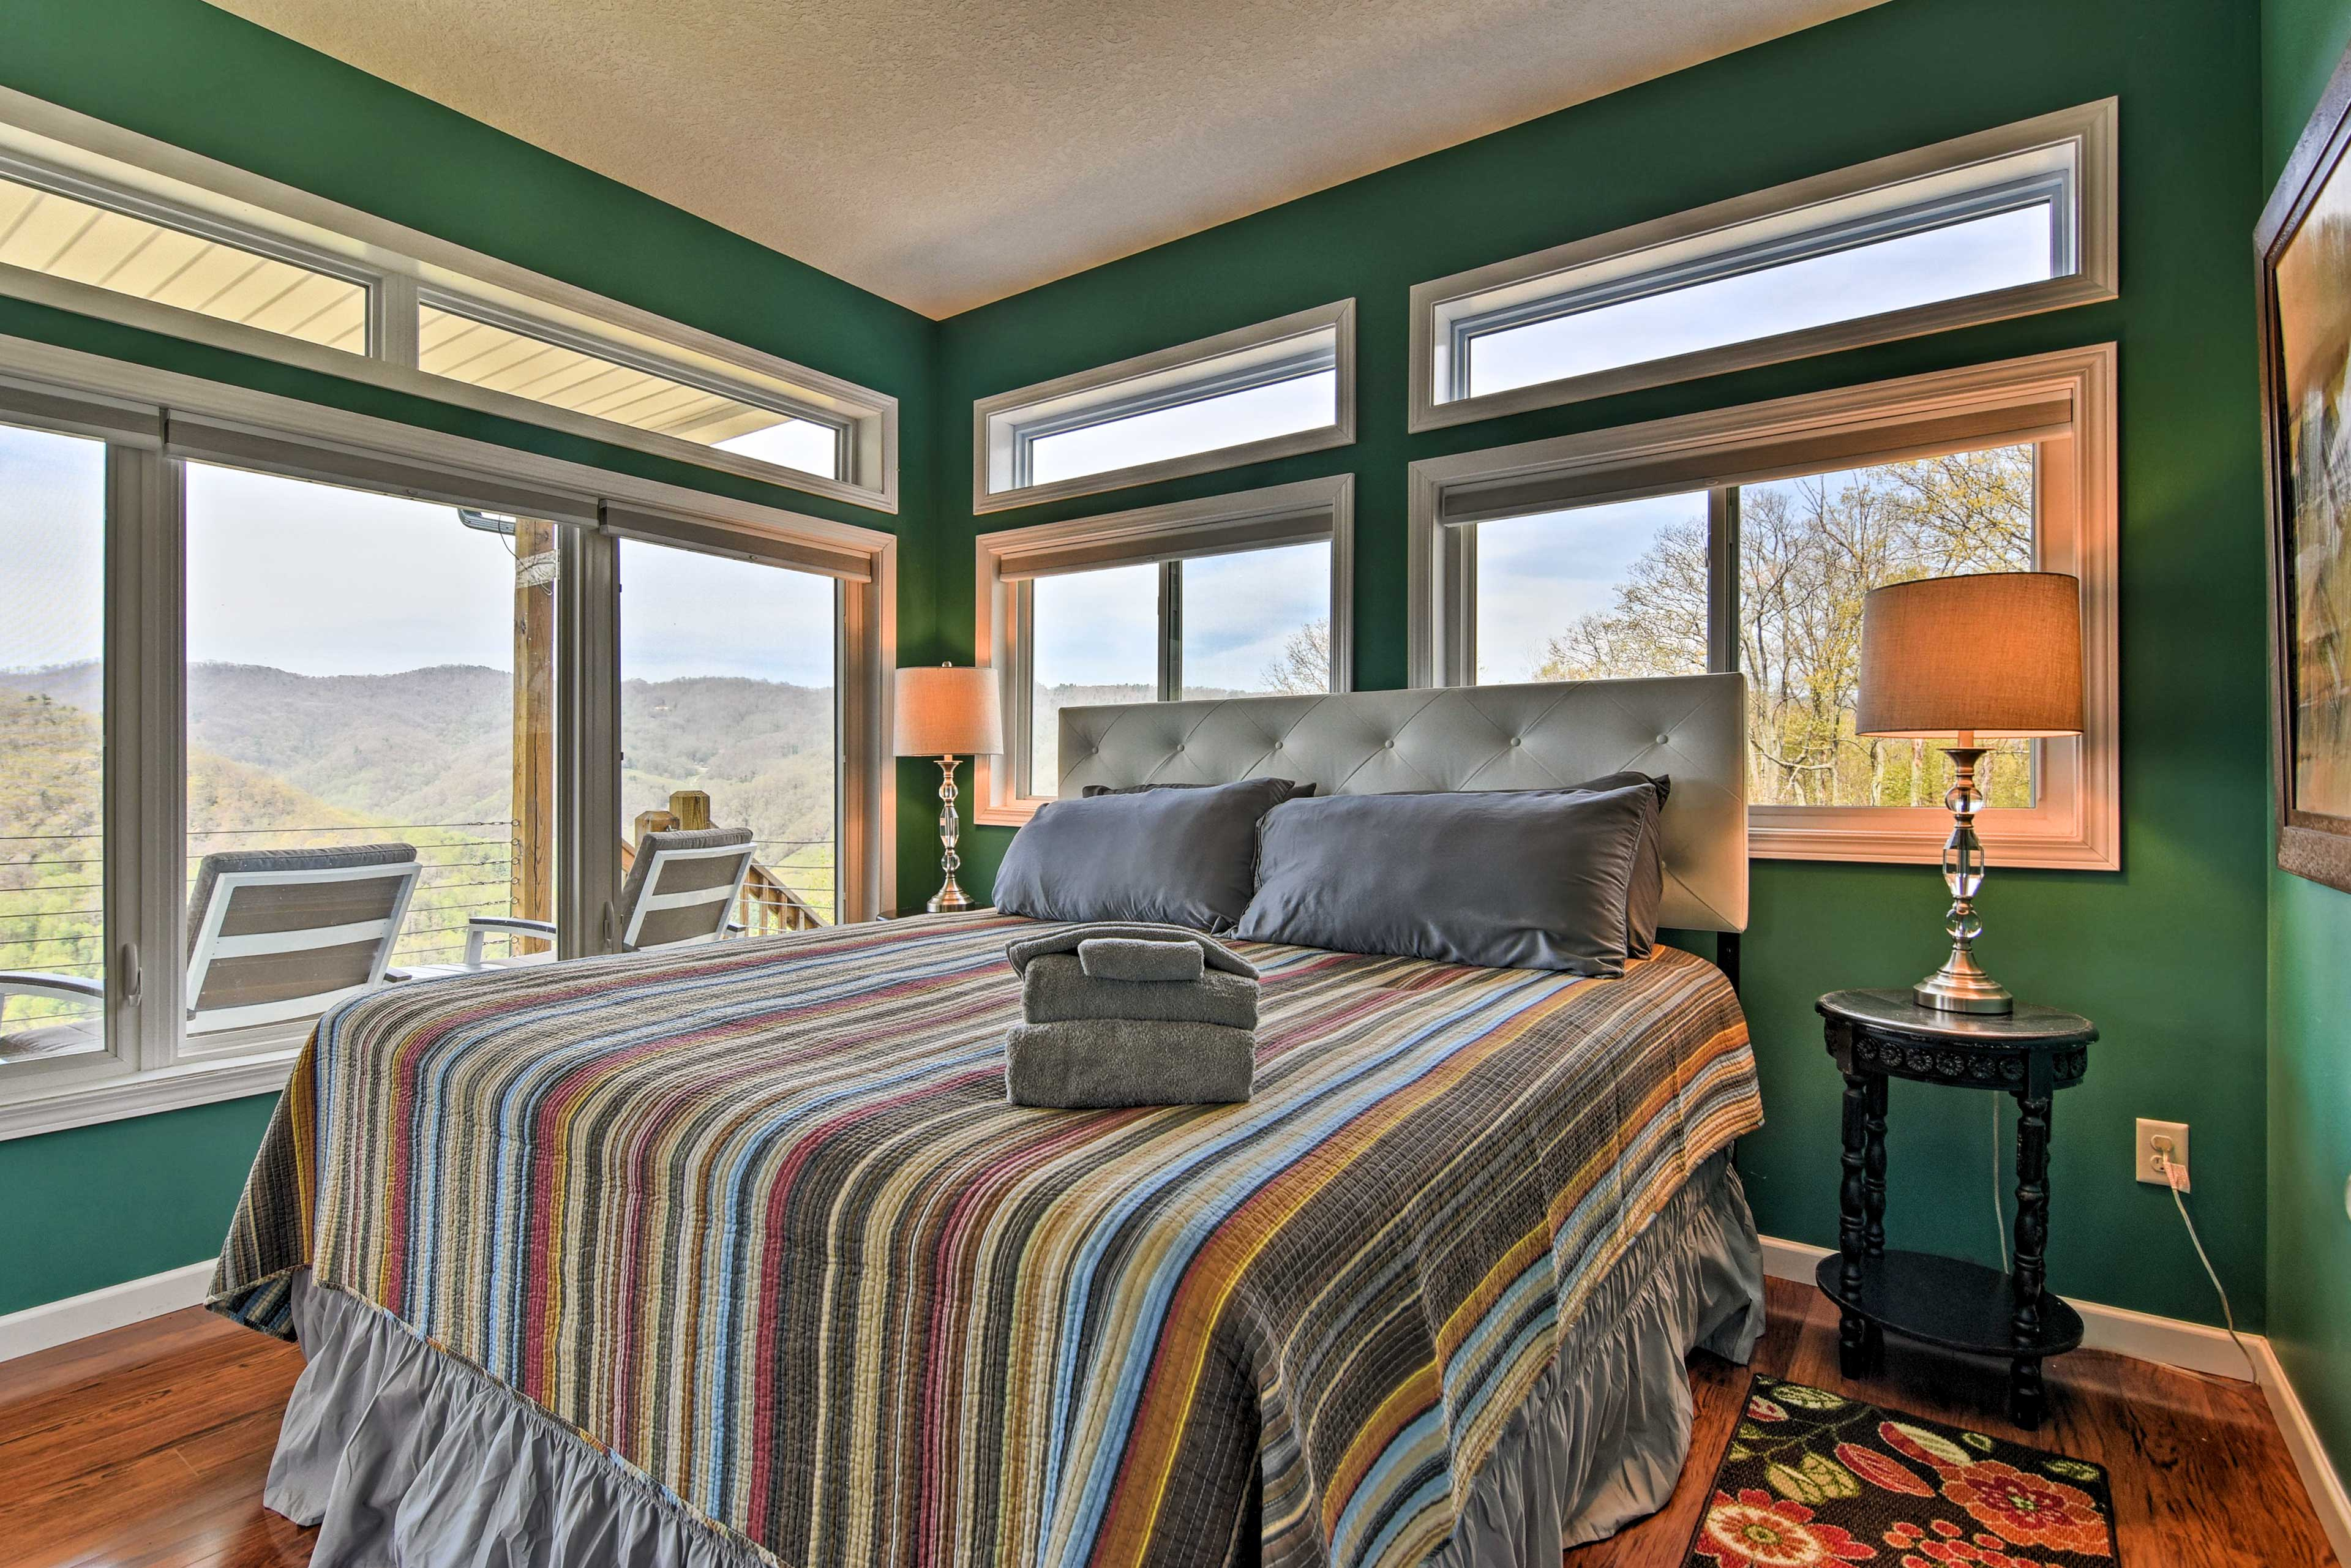 If you're looking for a room with a view, your search ends here!